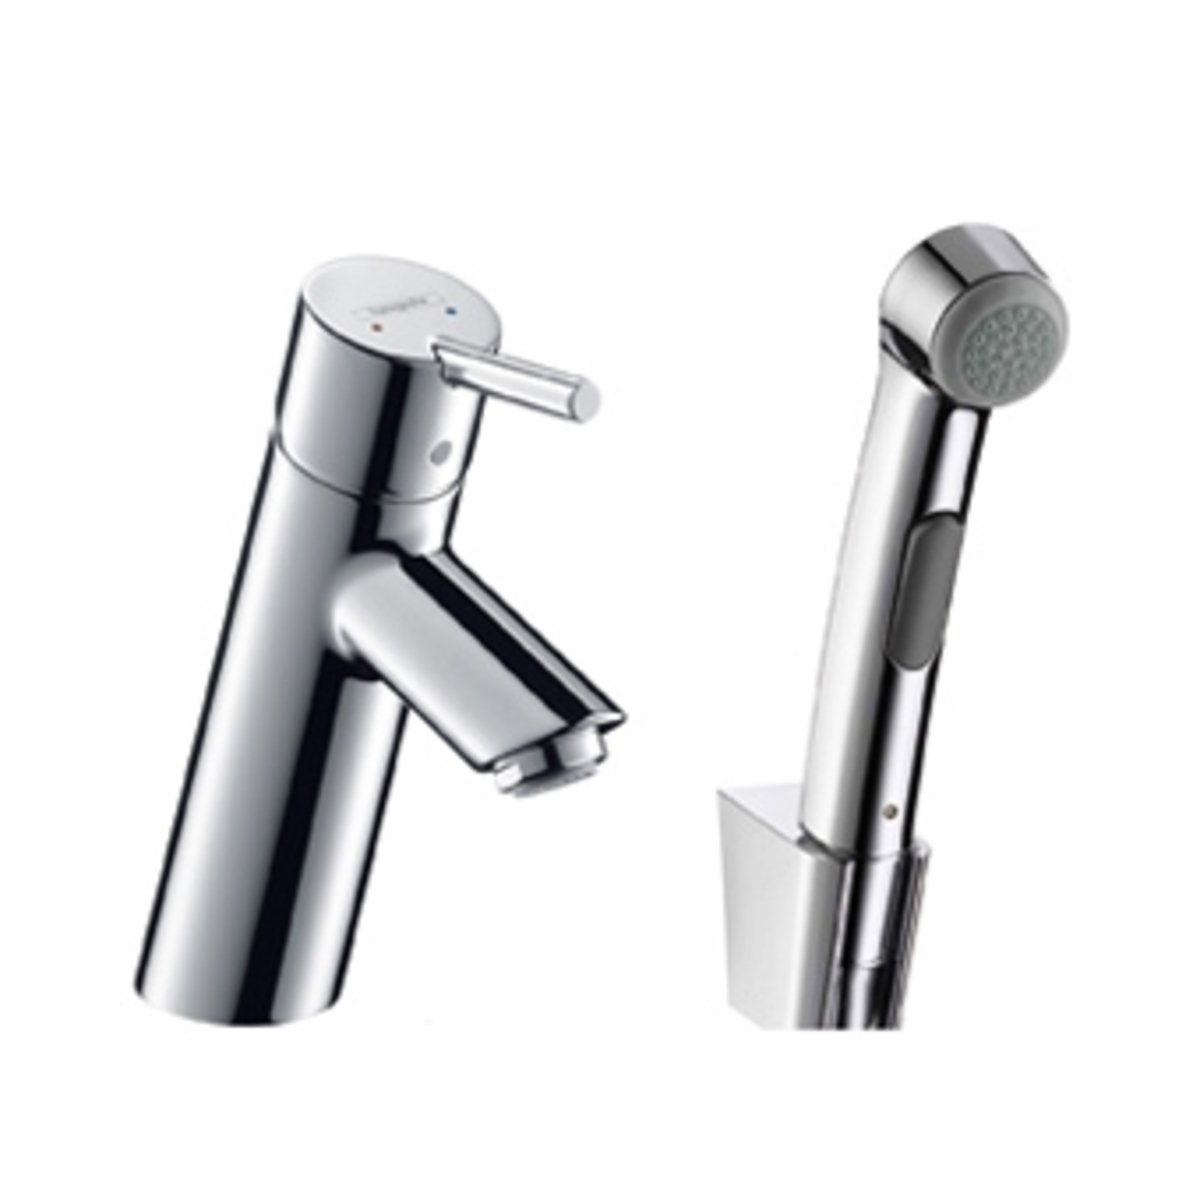 hansgrohe talis s2 robinet pour lavabo avec douchette de bidet chrome 32140000. Black Bedroom Furniture Sets. Home Design Ideas